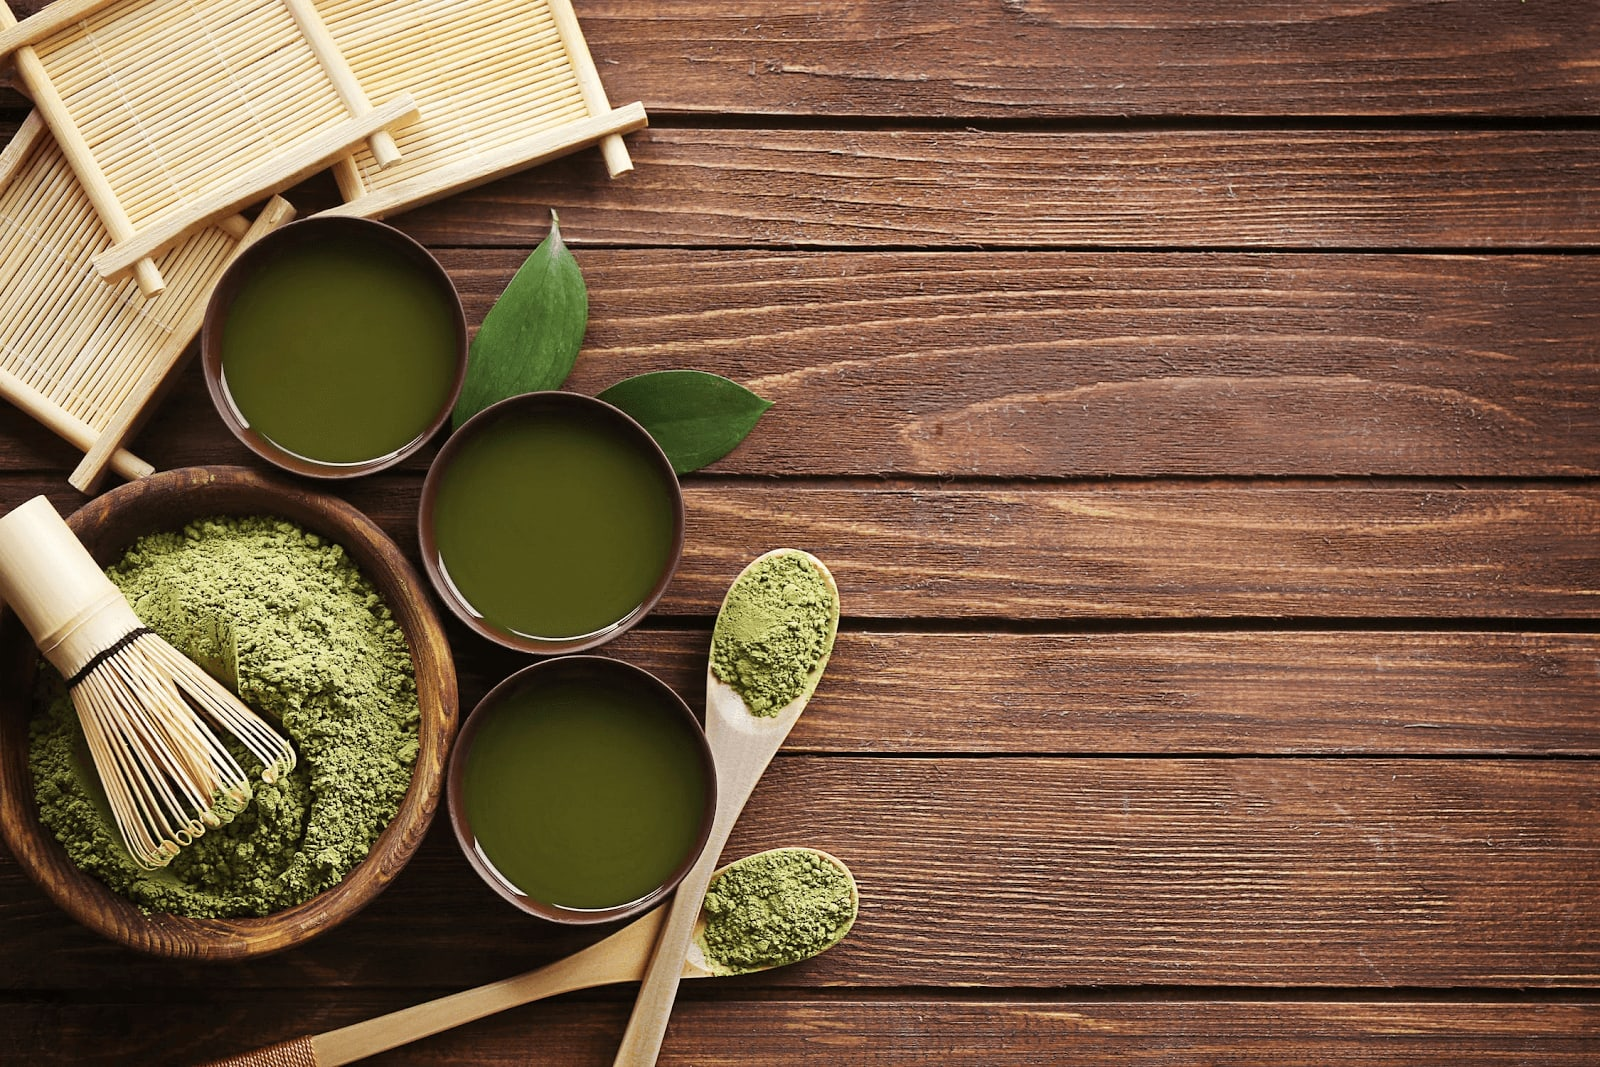 Liquid and powdered kratom extract in bowls and spoons on a wooden table.